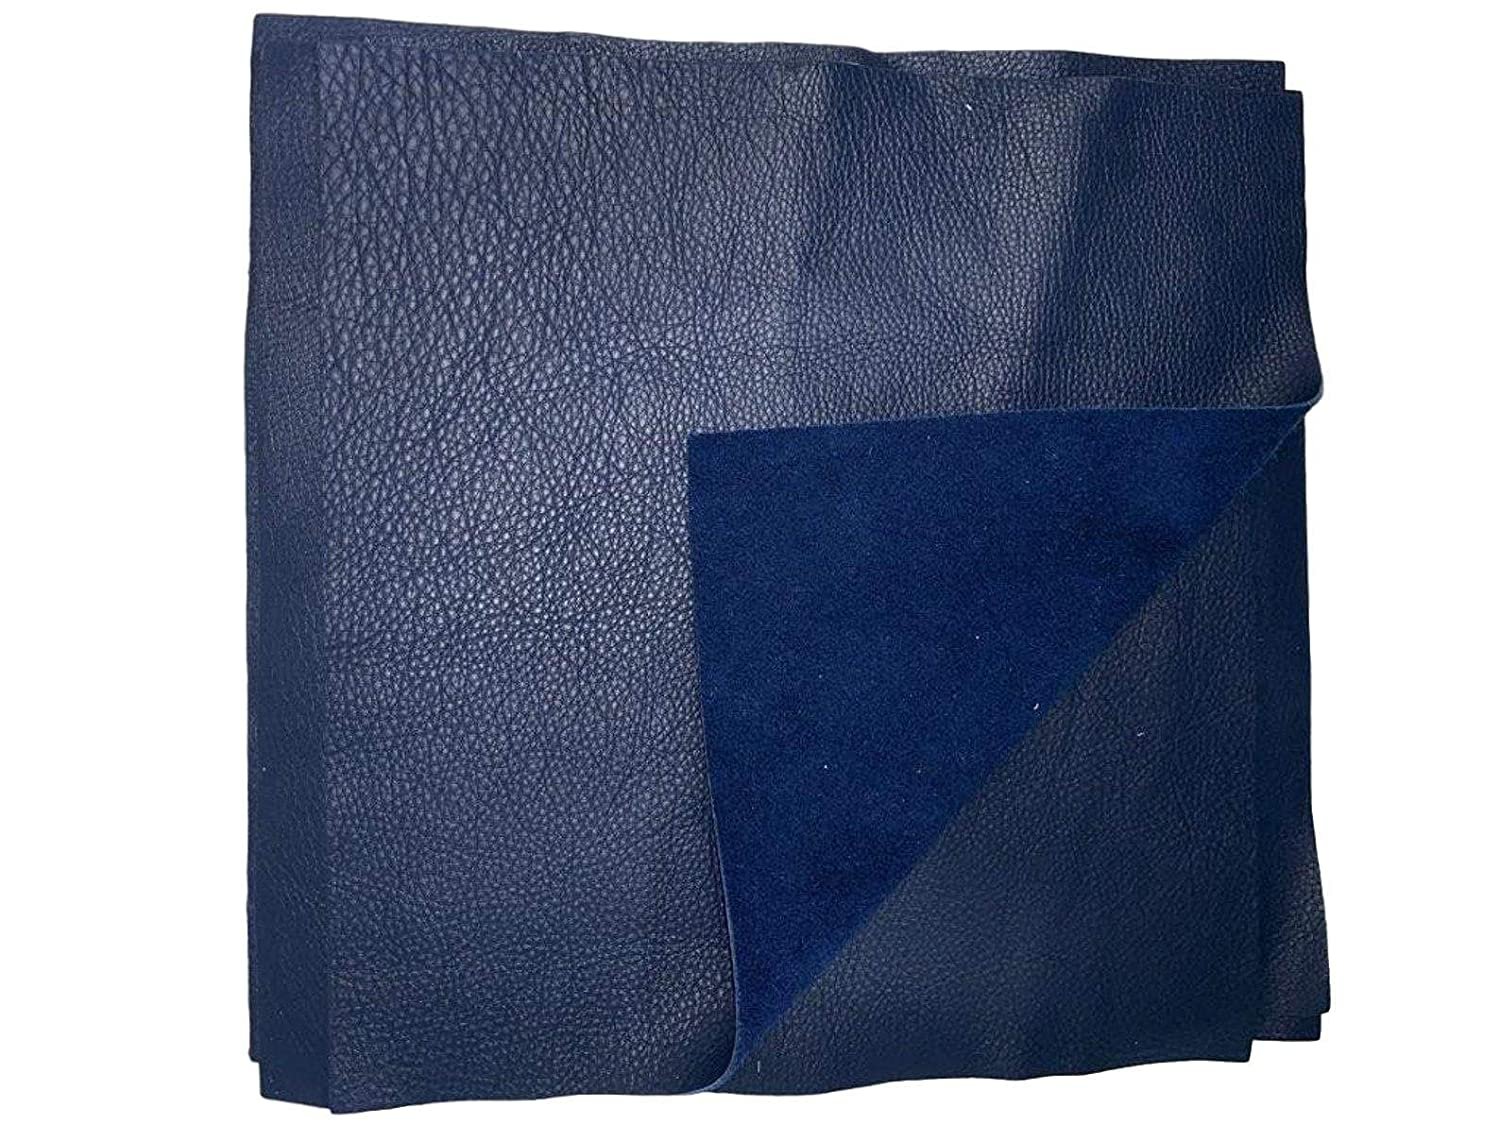 Navy Cowhide Soft Natural Grain Leather 2.5-3 oz 12 x 12 PRE Cut Squares